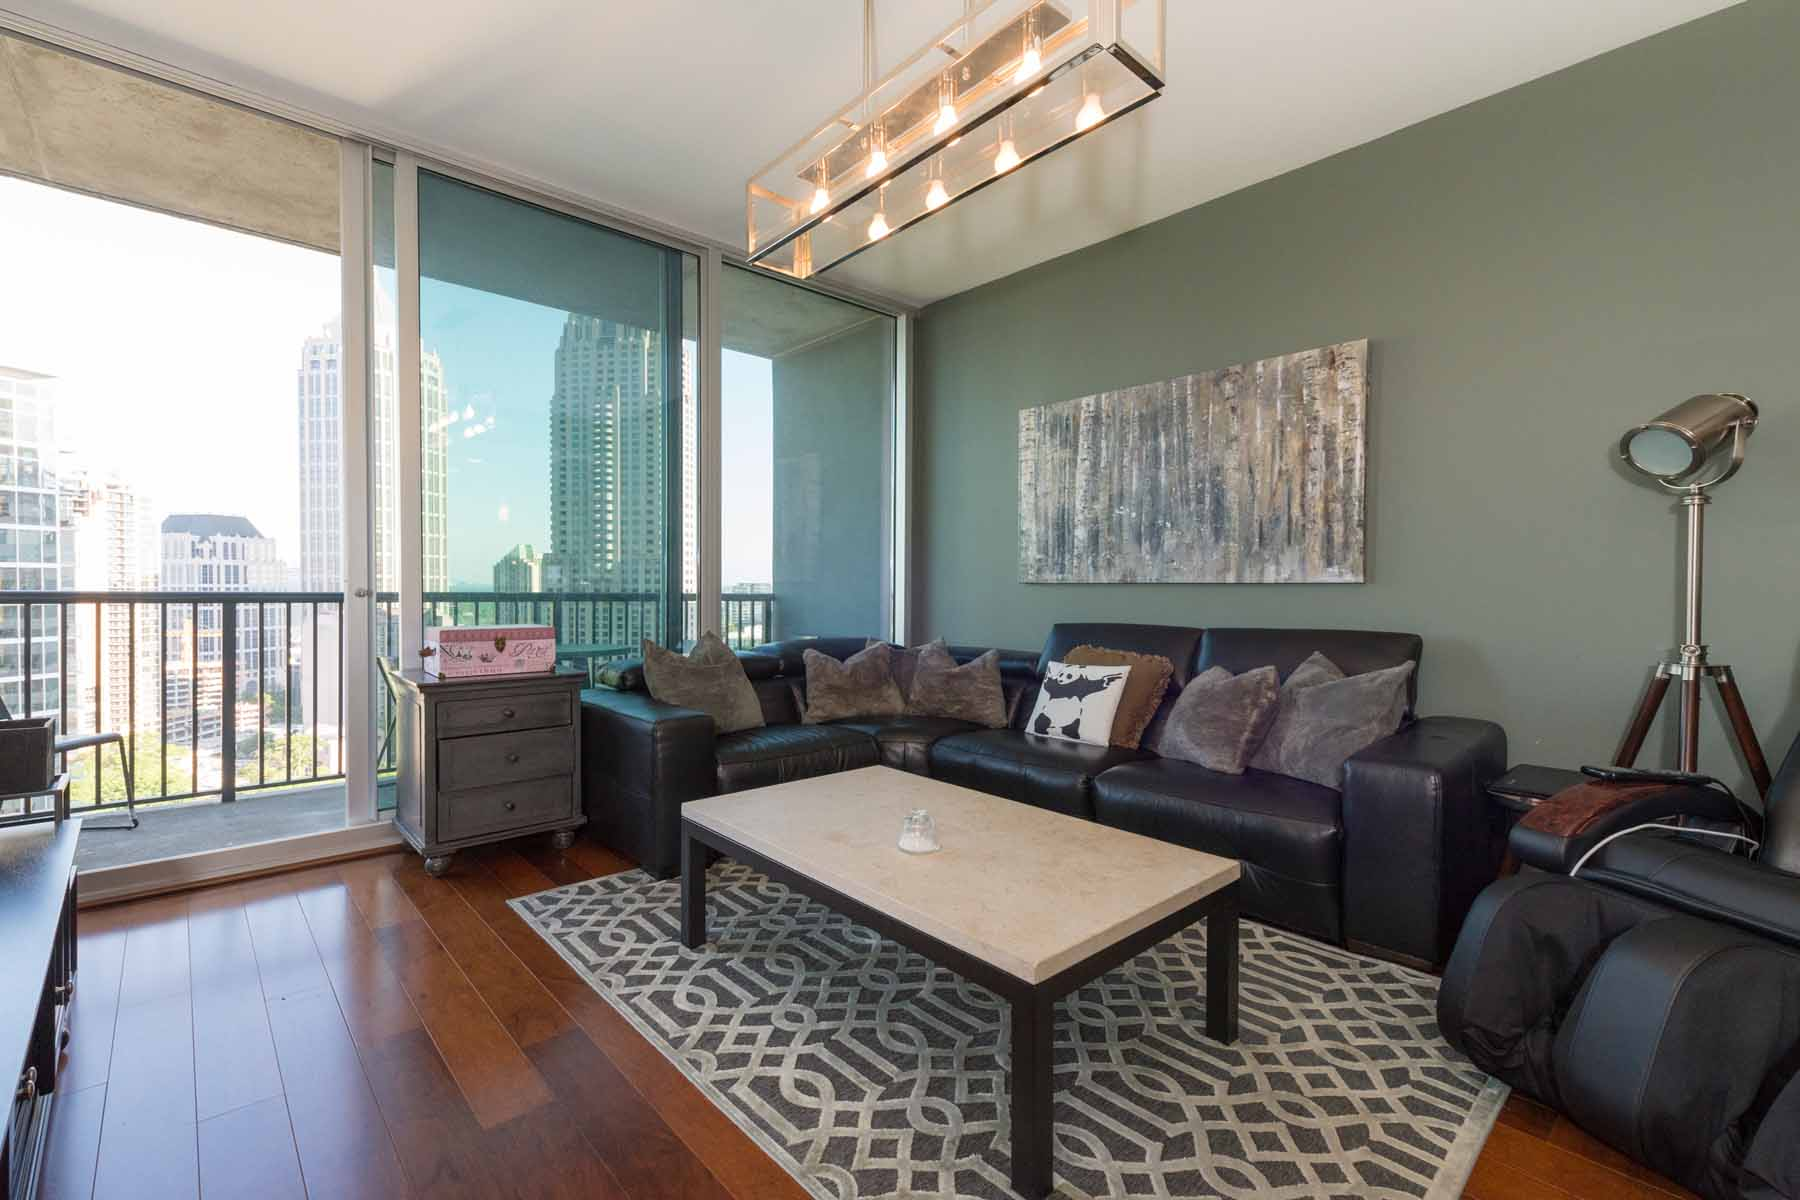 Copropriété pour l Vente à Spacious 1010 Midtown One Bedroom Unit 1080 Peachtree Street NE Unit #1816 Atlanta, Georgia, 30309 États-Unis